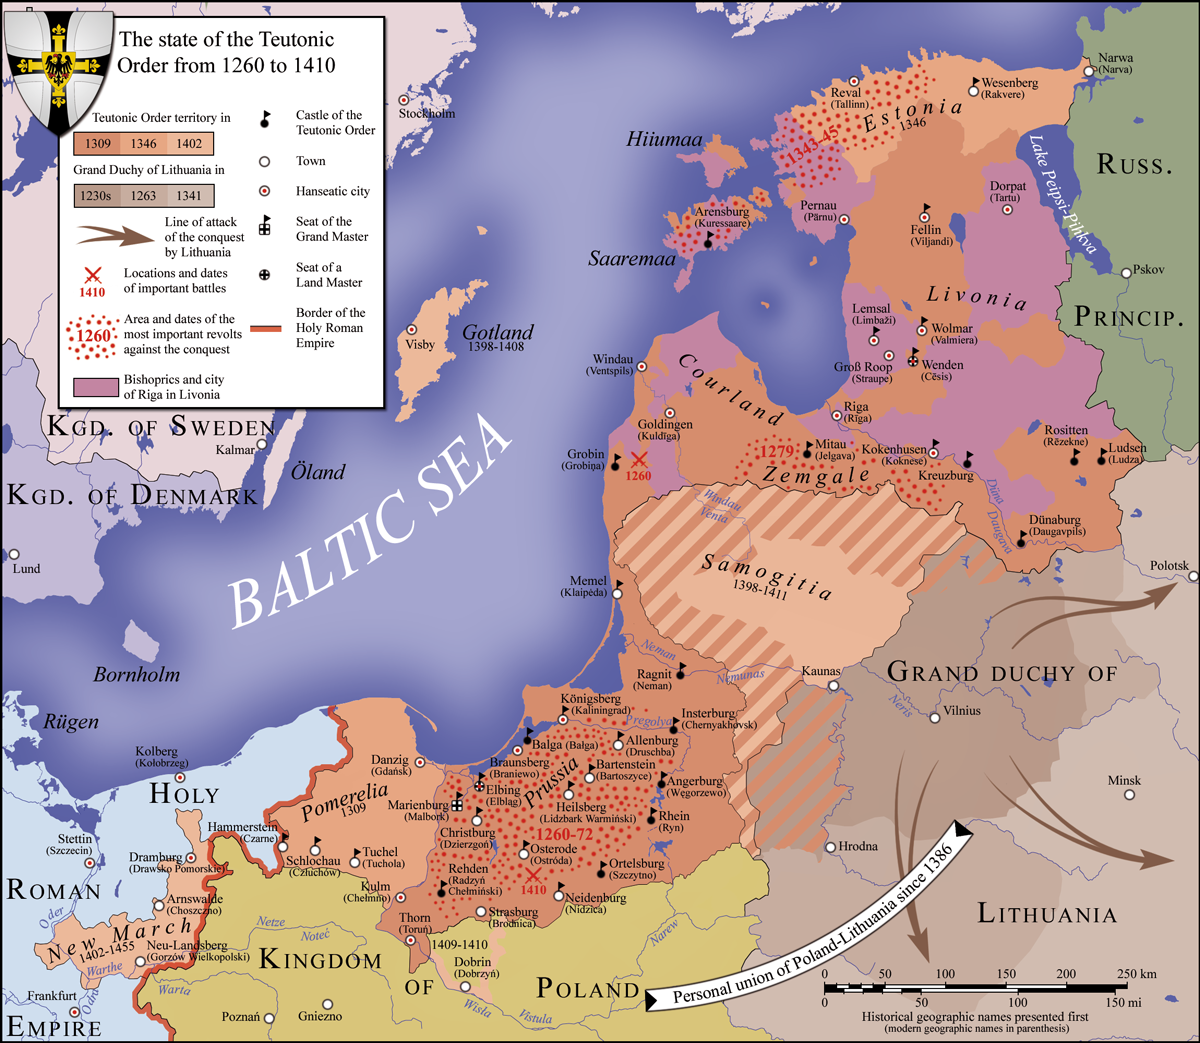 Northern Crusades   Europe   Historical maps, Map, History on ancient egypt world maps, assassin's creed flag maps, knights templar travel maps, religion world maps,